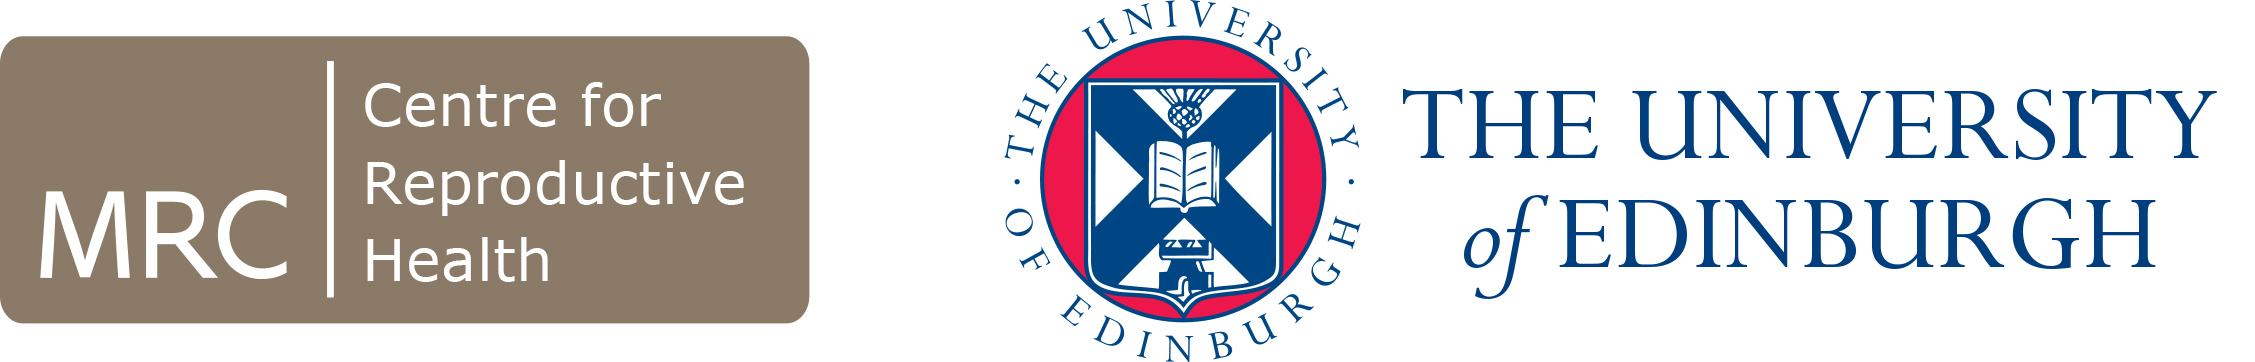 MRC CRH The University of Edinburgh logo